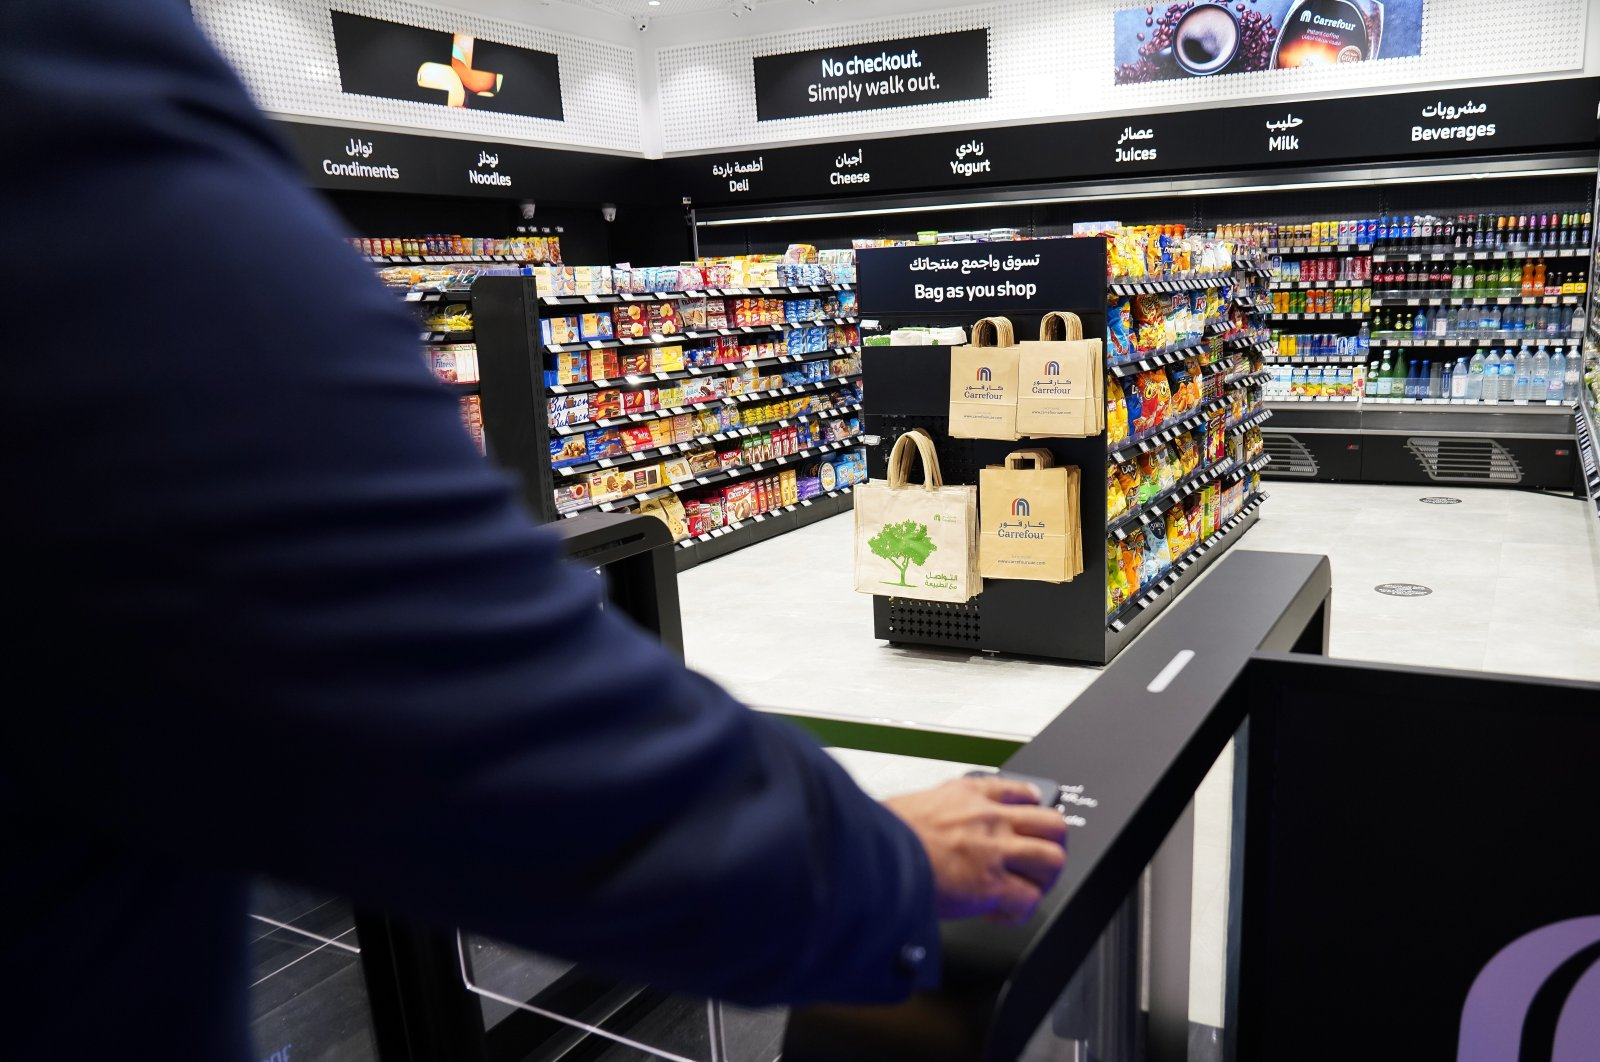 A man uses a QR code on a mobile phone to enter Carrefour's new cashier-less grocery store in Mall of the Emirates in Dubai, United Arab Emirates, Sept. 6, 2021. (AP Photo)